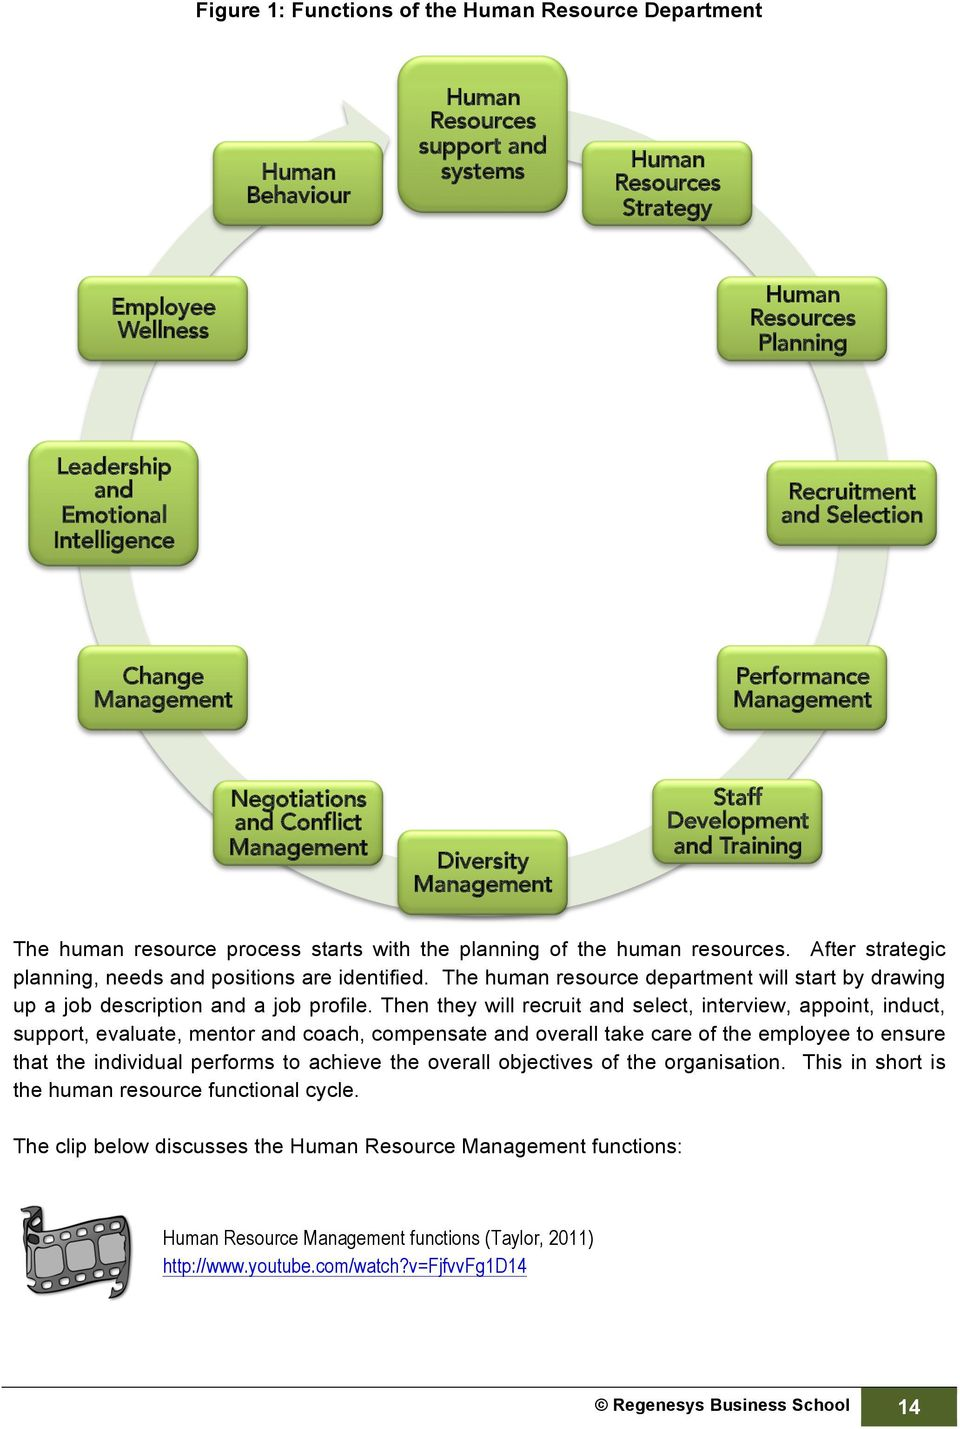 starts with the planning of the human resources. After strategic planning, needs and positions are identified.